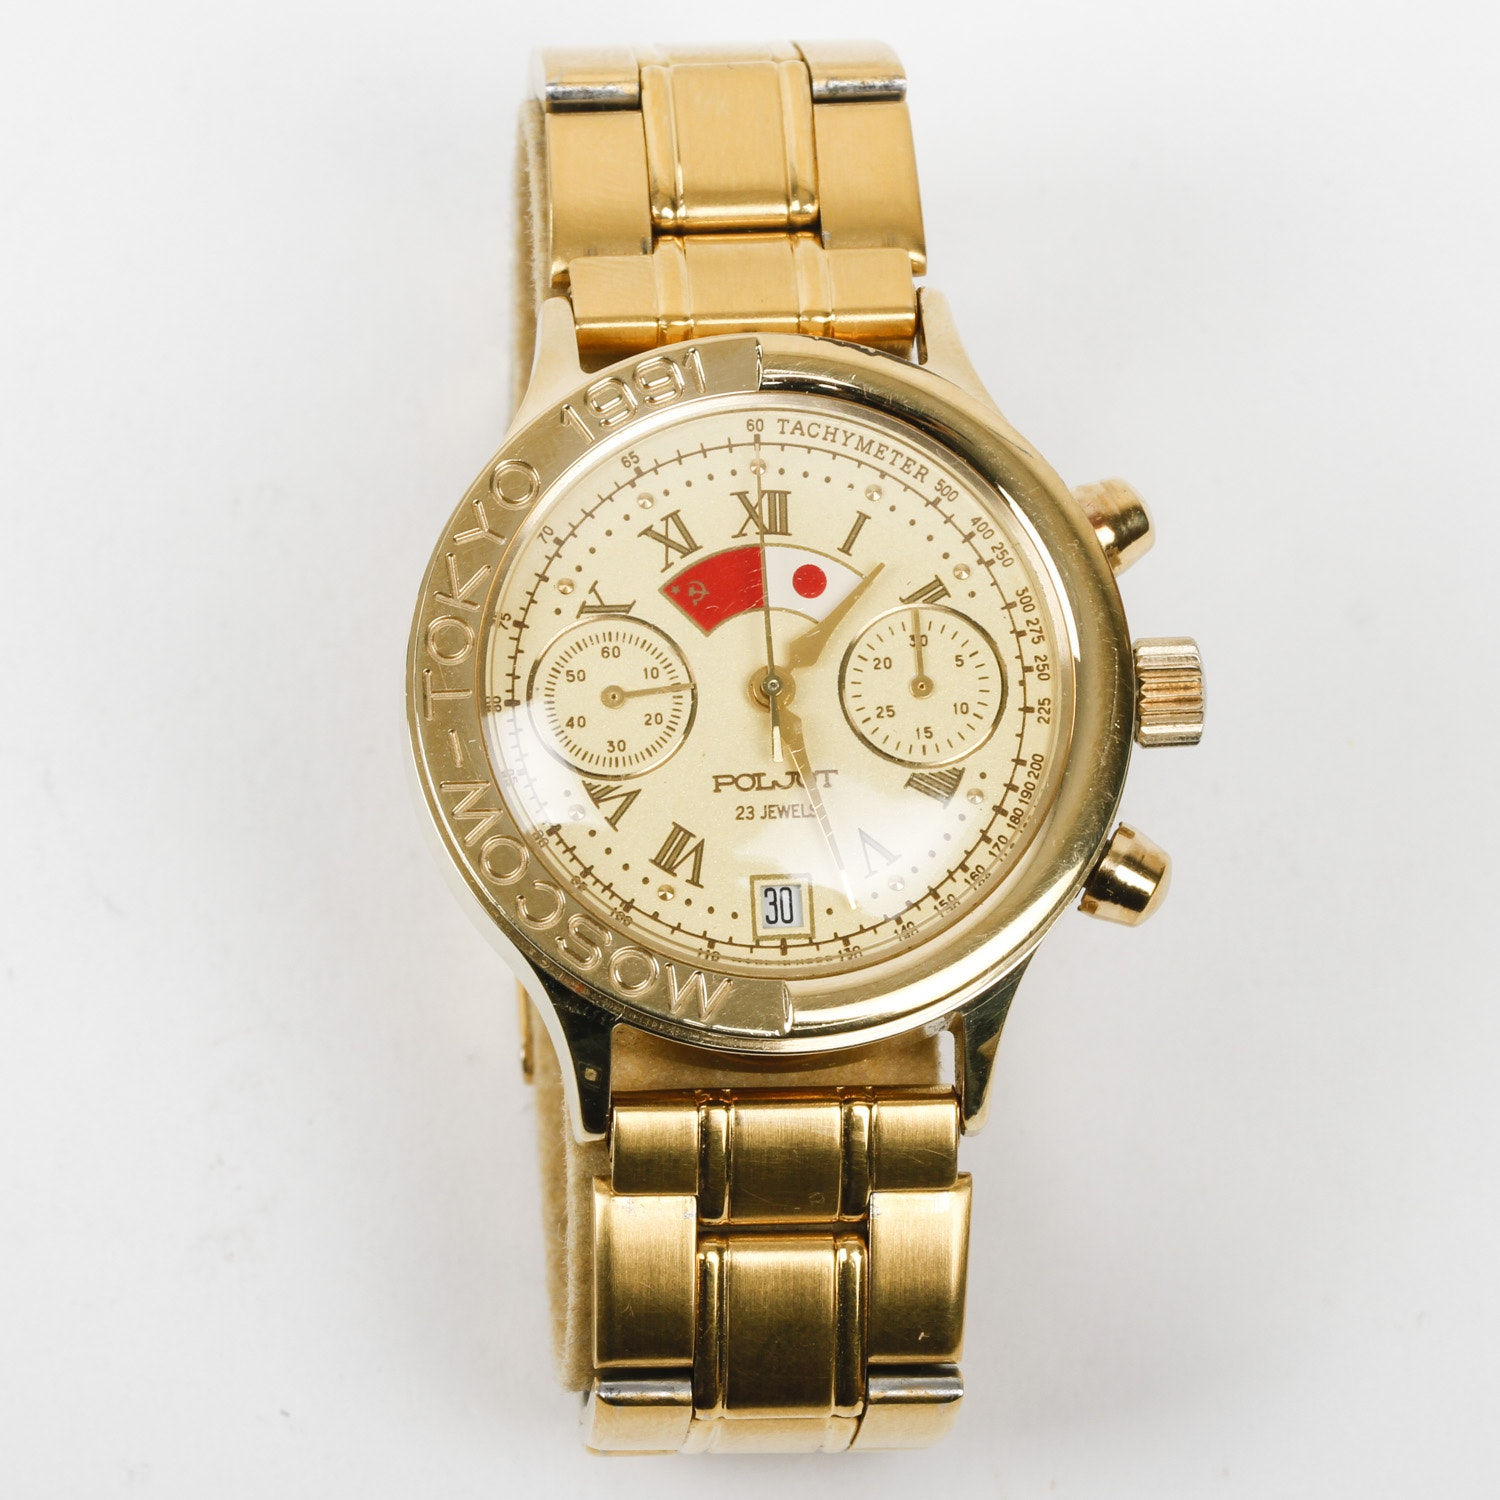 Vintage Poljot Chronograph Watch